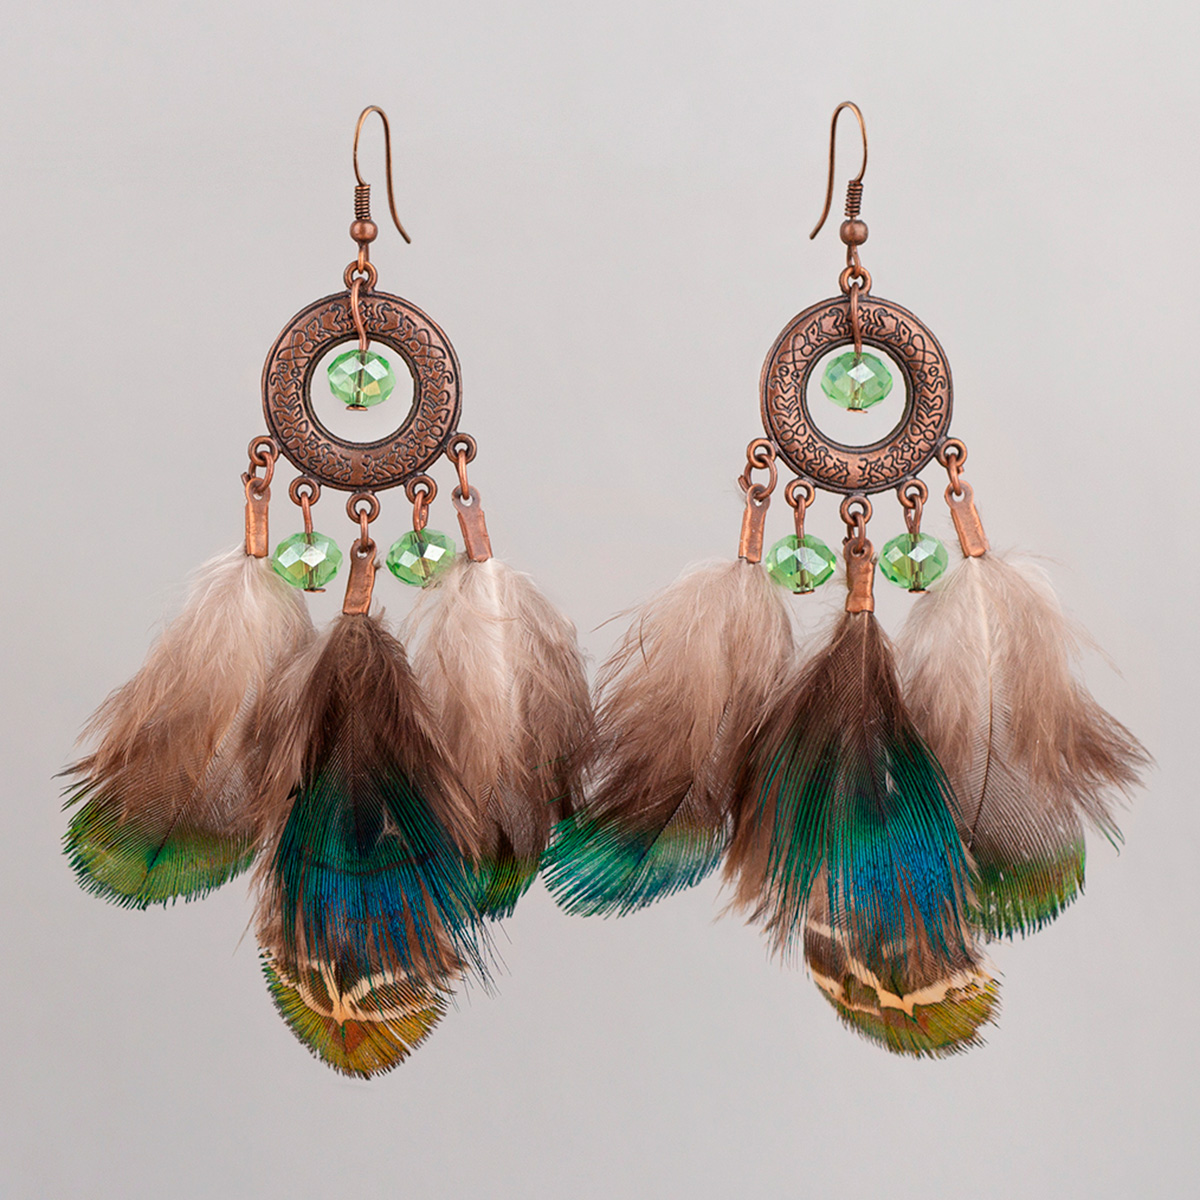 Iridescent Pheasant feathers earrings